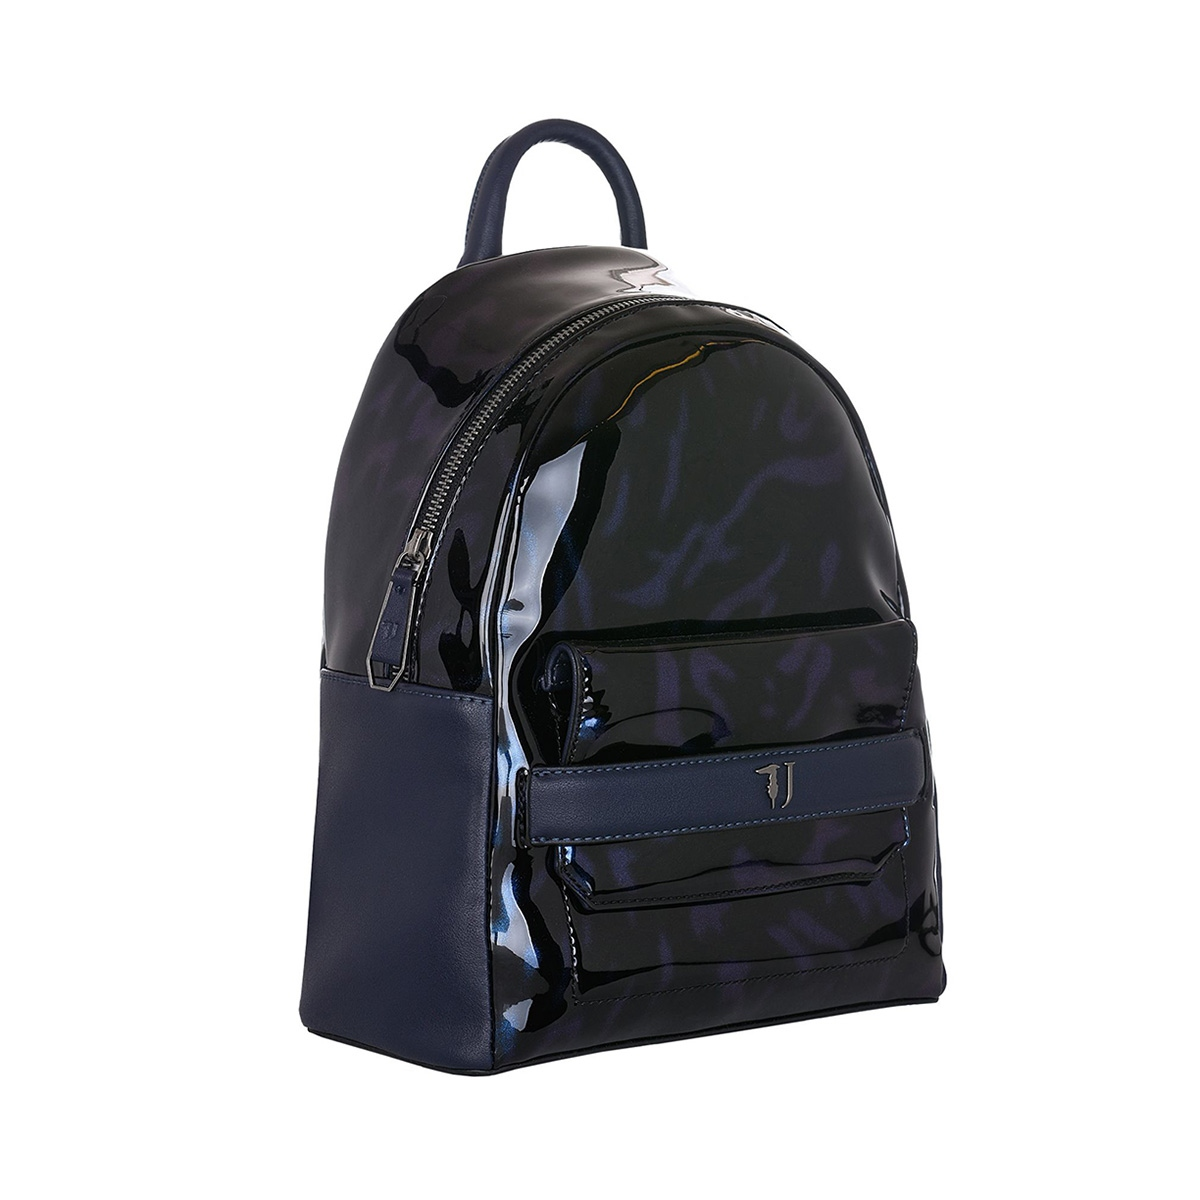 aebf8a74089 Σακίδιο Πλάτης Trussardi Jeans Paprica Backpack Patent Ecoleather 75B00557  Μπλε-Μοβ